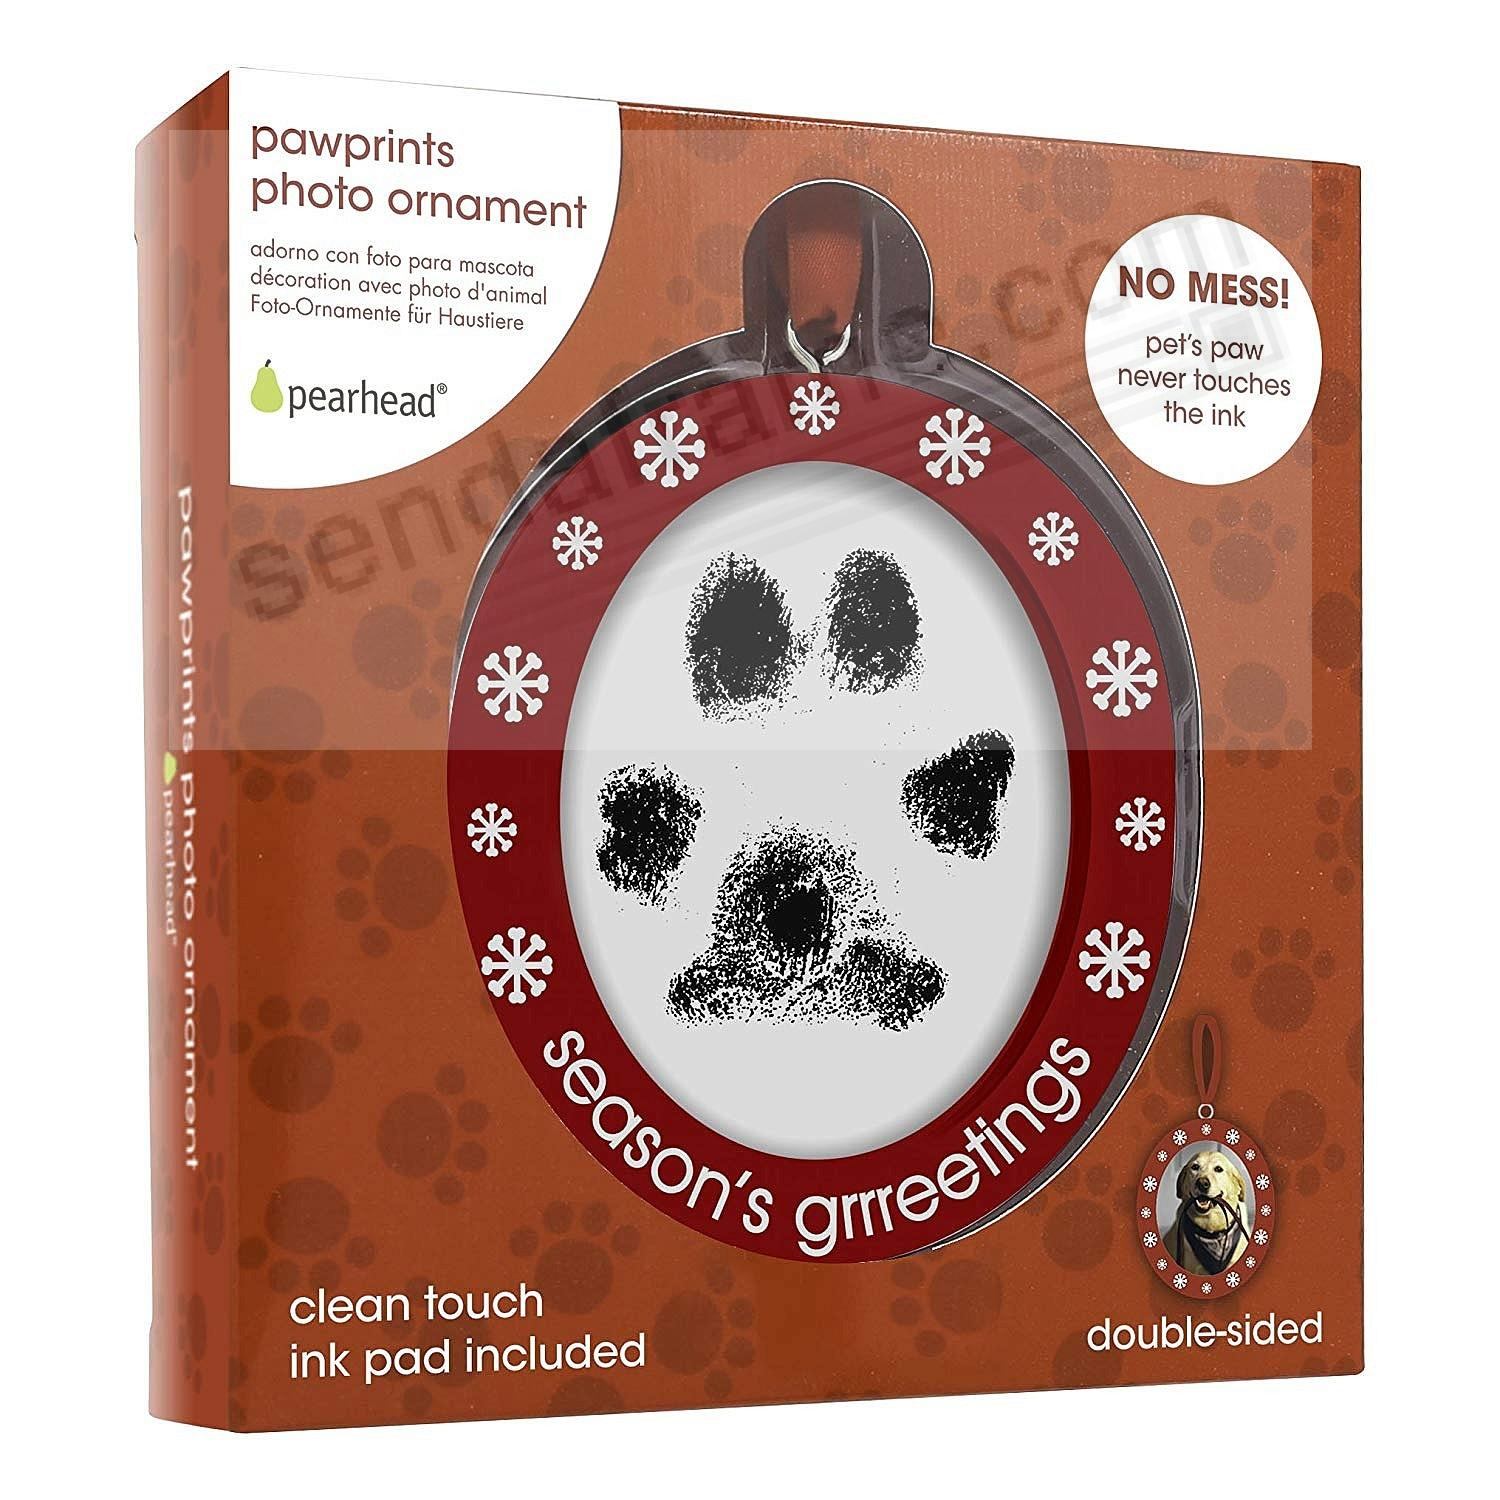 Pearhead® PAWPRINT PHOTO Ornament for a One-of-a-Kind Christmas gift